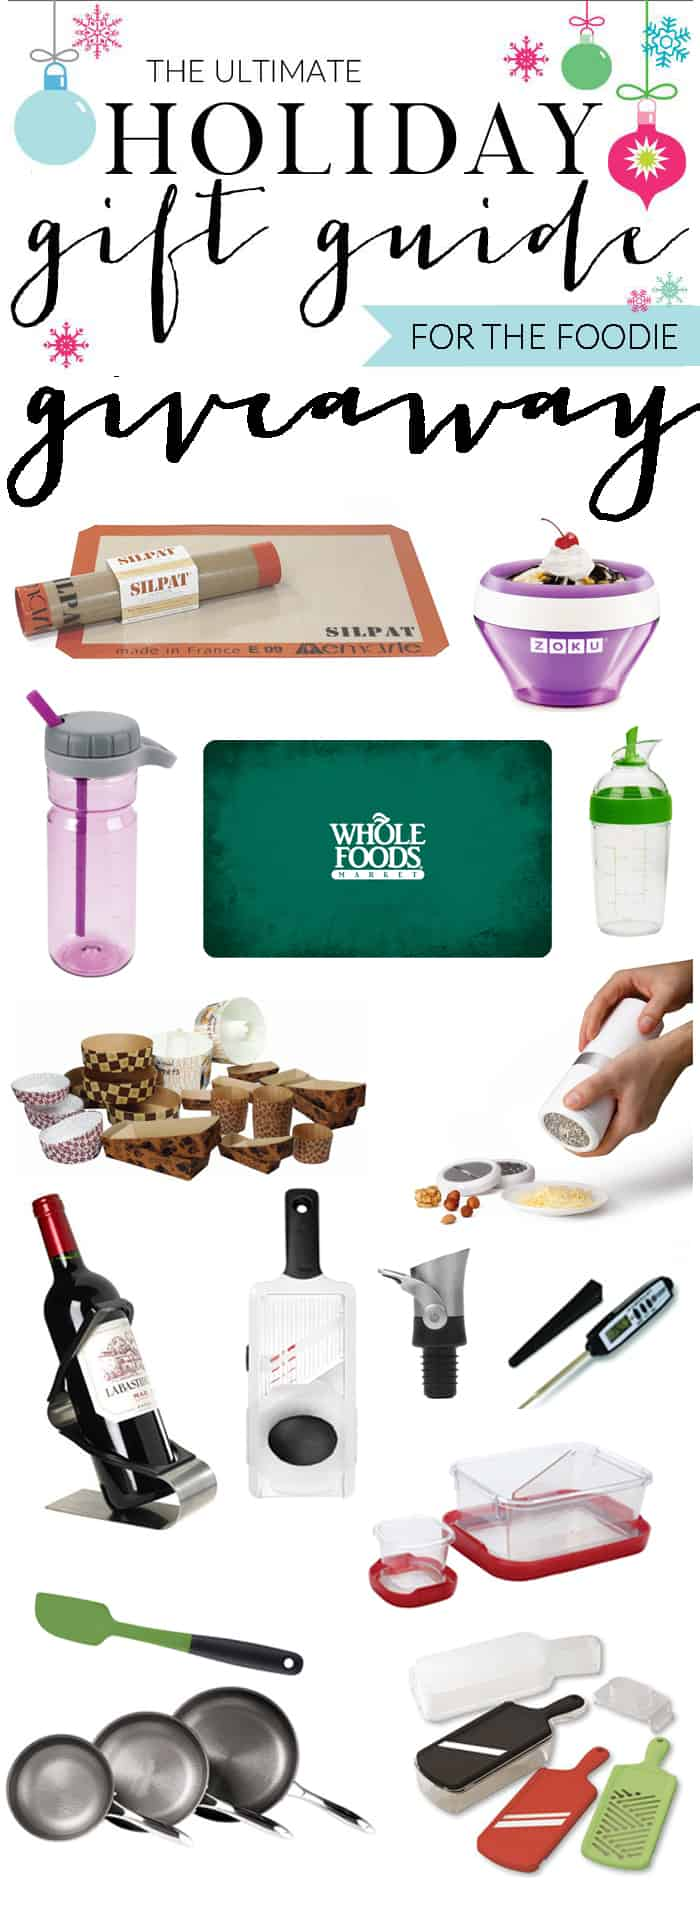 foodie ultimate gift guide giveaway